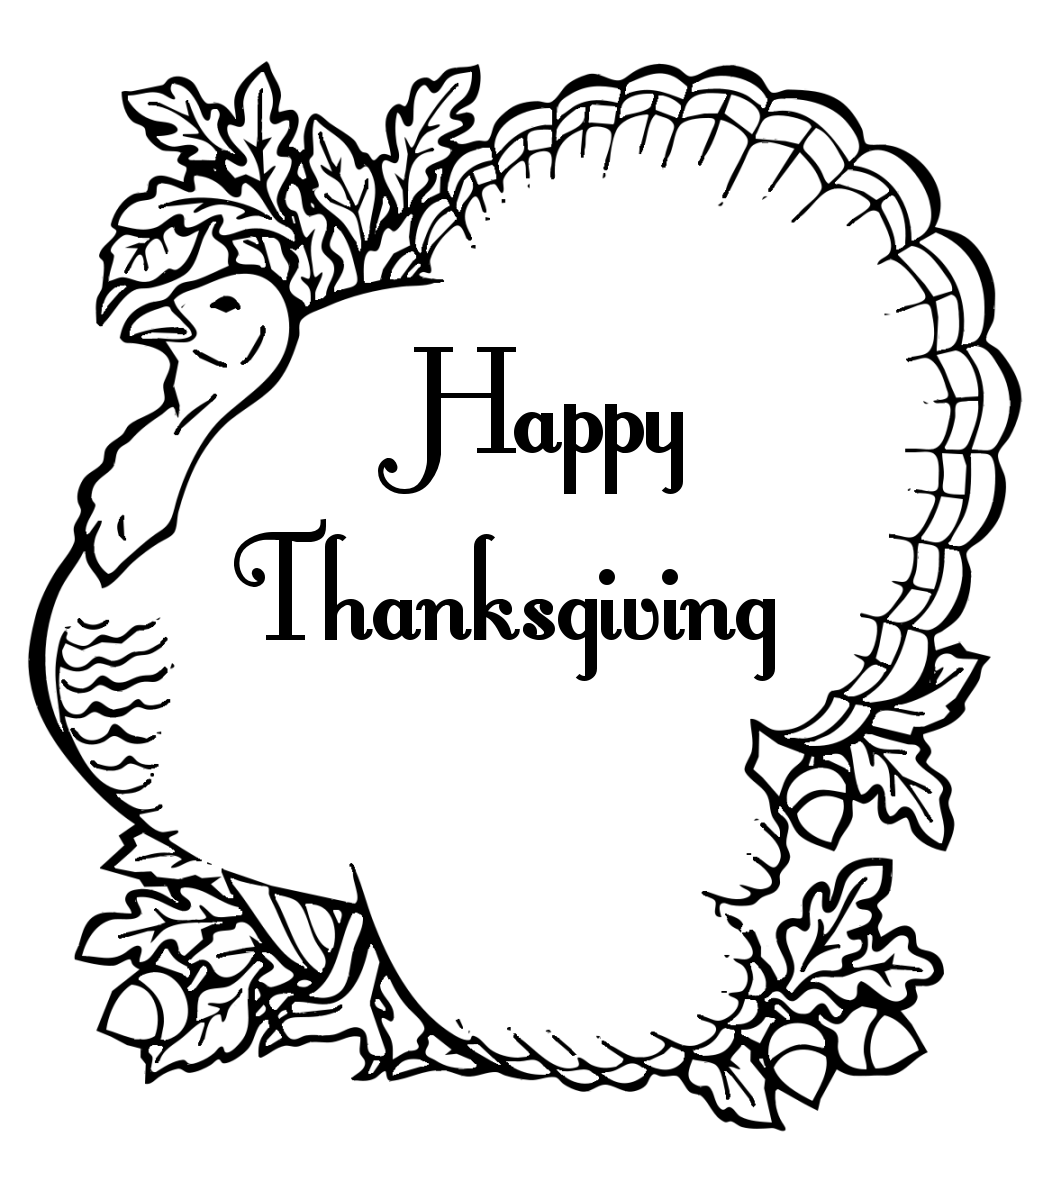 Coloring Pages Thanksgiving Pages To Print And Color 1000 images about 5 thanksgiving coloring pages on pinterest pumpkin and thanksgiving